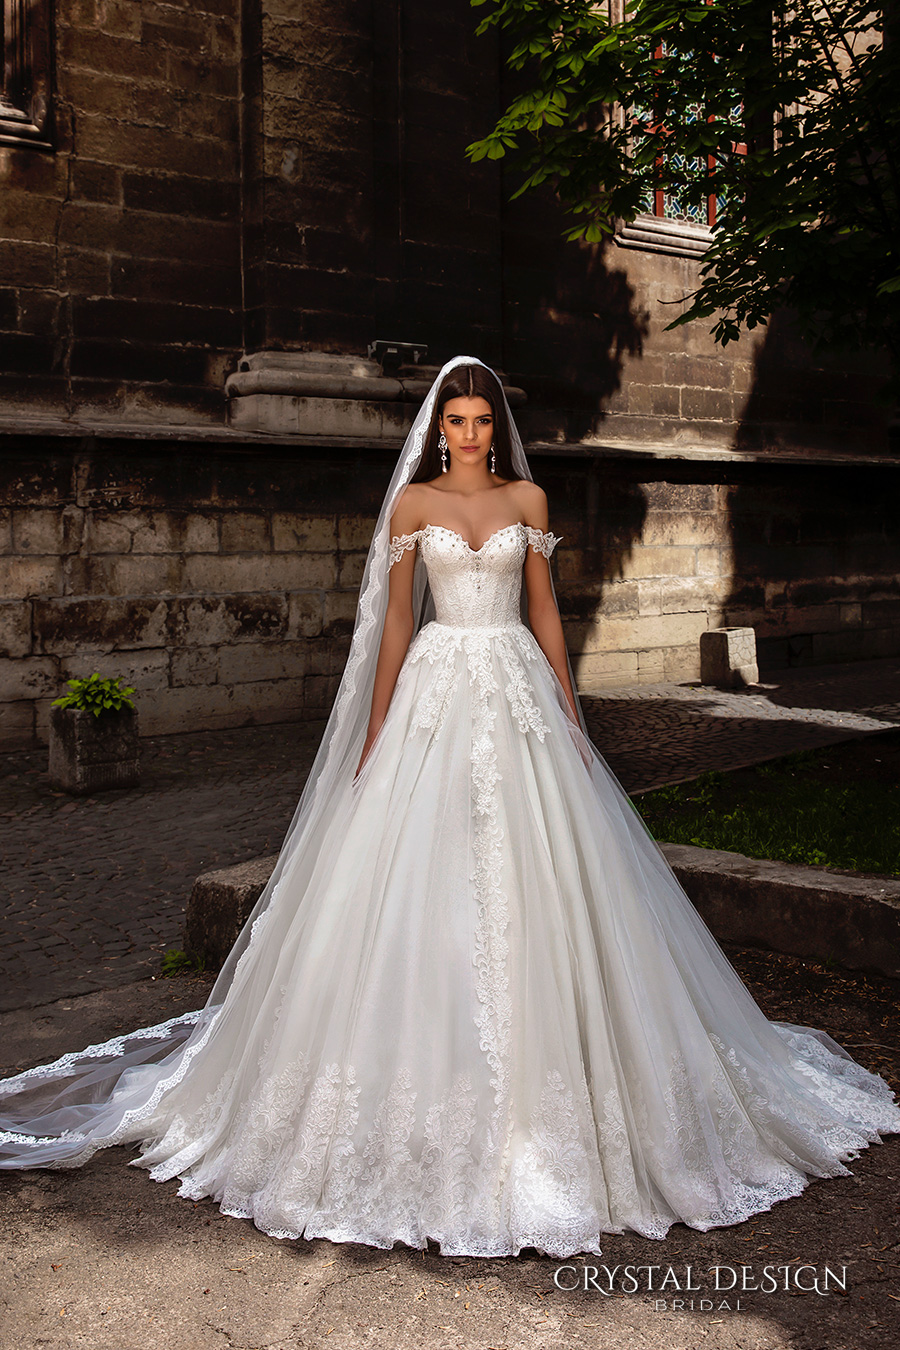 Wedding Dresses With Crystals : Crystal design wedding dresses inspirasi